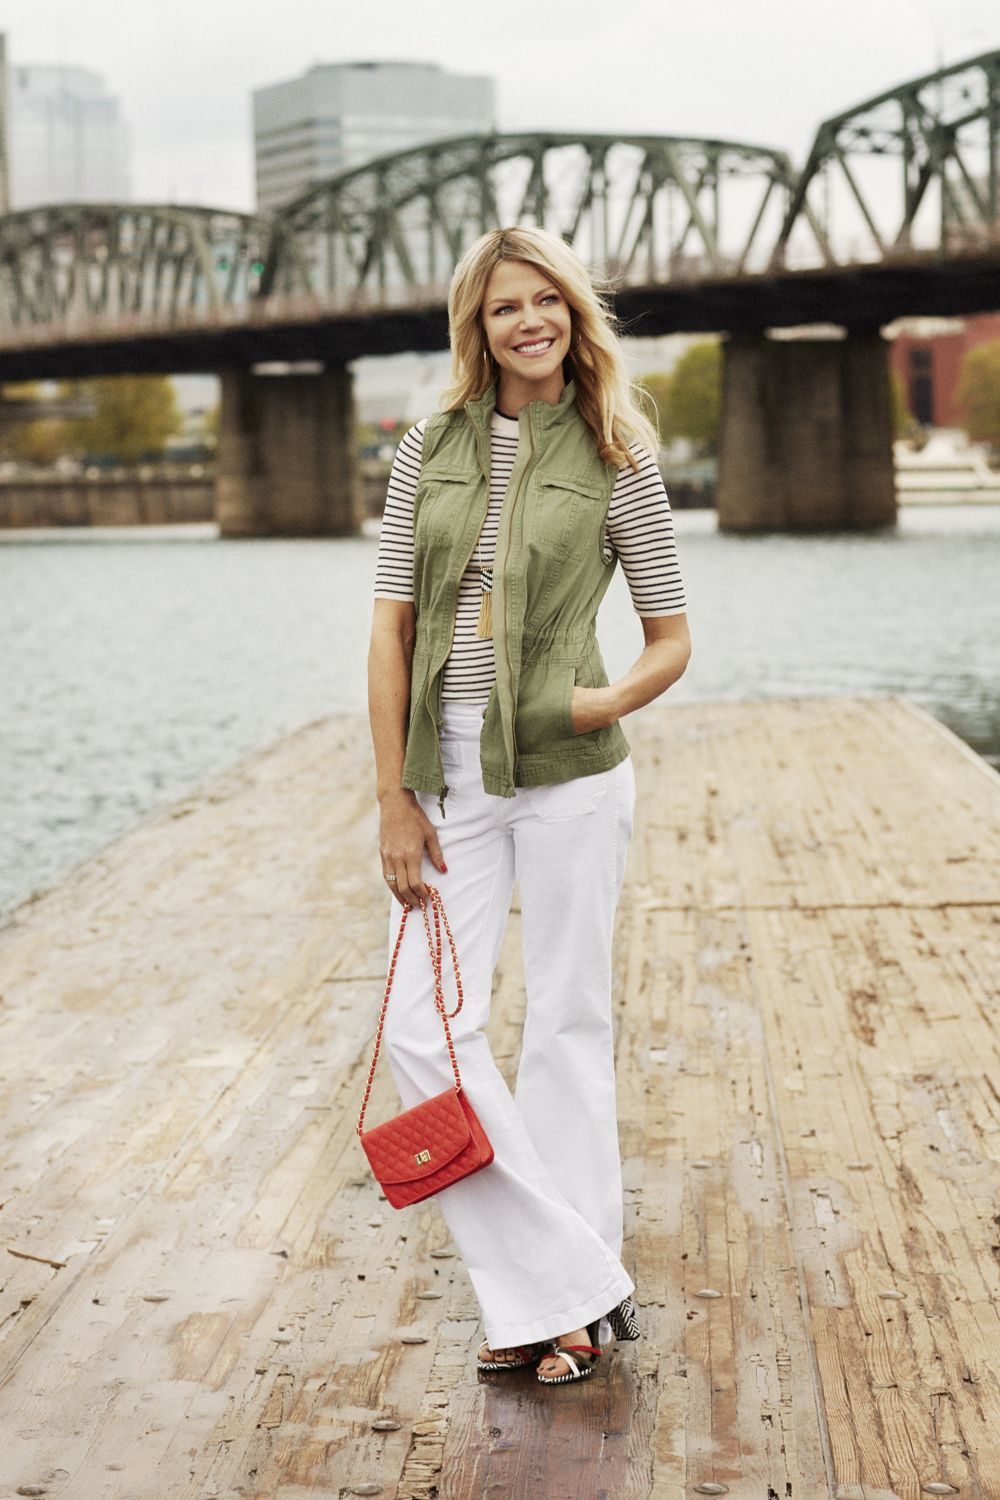 """<p>Look slimmer and taller in this ultra-flattering cut. One rule: Always pair them with heels. </p><p><em><strong>Vest</strong>, Merona, $30, <a href=""""http://target.com"""" target=""""_blank"""">target.com</a>. <strong>Sweater</strong>, $35, <a href=""""http://hm.com"""" target=""""_blank"""">hm.com</a>. <strong>Jeans</strong>, $70, <a href=""""http://gap.com"""" target=""""_blank"""">gap.com</a>. <strong>Hoops</strong>, $24, <a href=""""http://marlynschiff.com"""" target=""""_blank"""">marlynschiff.com</a>. <strong>Necklace</strong>, $40, <a href=""""http://thelimited.com"""" target=""""_blank"""">thelimited.com</a>. <strong>Gold ring</strong>, $90, and <strong>silver ring</strong>, $65, <a href=""""http://pandora.net"""" target=""""_blank"""">pandora.net</a>. <strong>Bag</strong>, $55, <a href=""""http://urbanexpressions.net"""" target=""""_blank"""">urbanexpressions.net</a> (25% off sitewide for </em>GH<em> readers with code UE-GOODHSKPG25). <strong>Shoes</strong>, $30, Primark stores.</em> </p><p><em><strong>On location:</strong> <a href=""""https://www.portlandoregon.gov/parks/finder/index.cfm?&propertyid=105&action=viewpark"""" target=""""_blank"""">Eastbank Esplanade</a></em> </p><p><em>Take a scenic stroll on the Williamette River.</em></p>"""